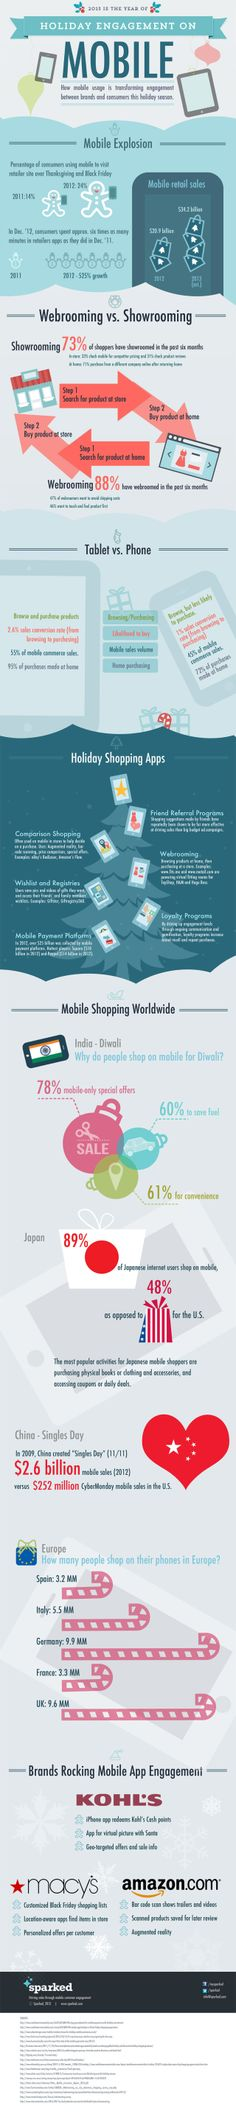 Holiday engagement on mobile #infografia #infographic #ecommerce